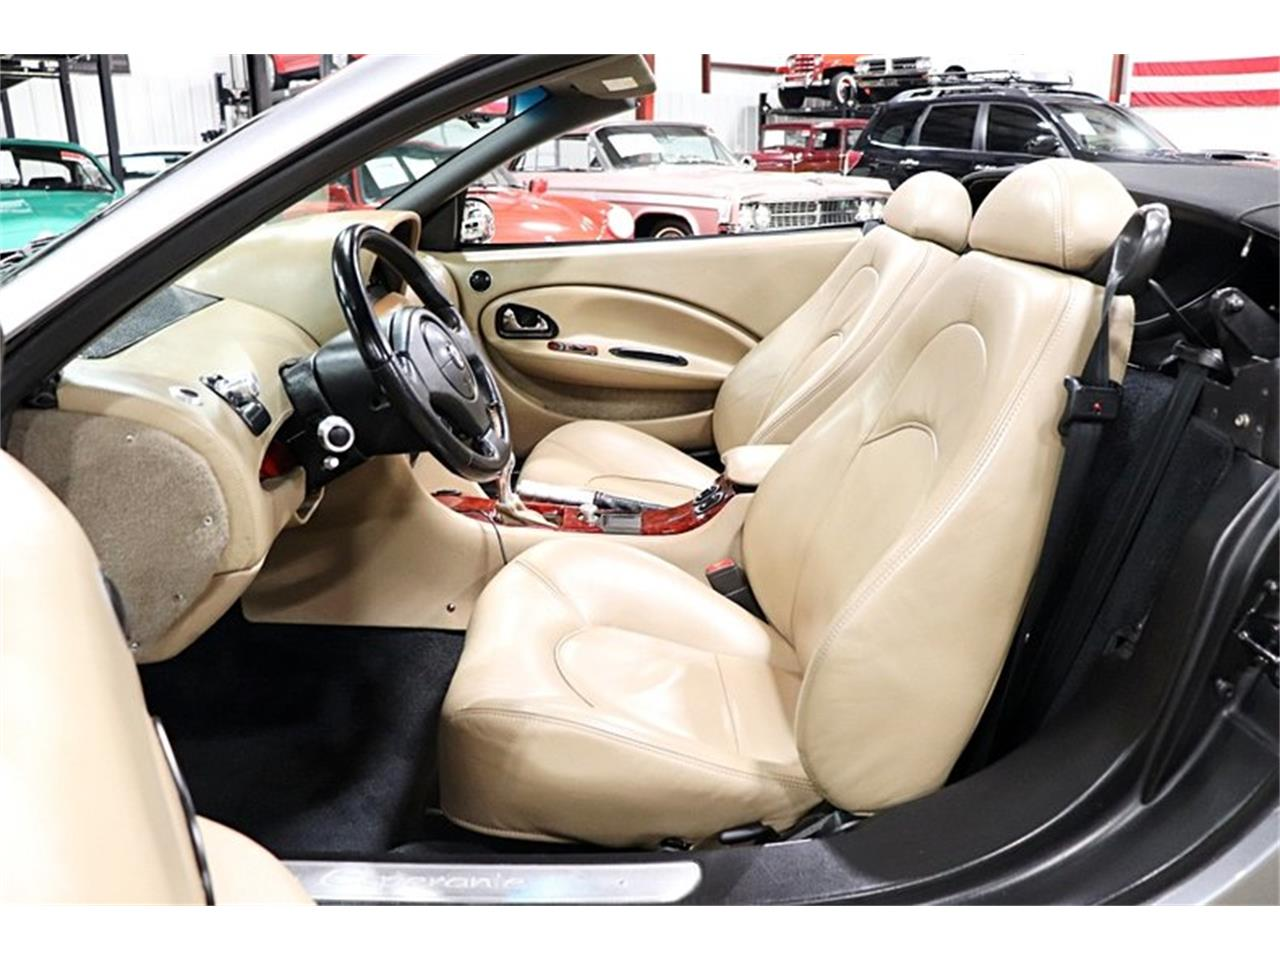 2001 Panoz Esperante for sale in Kentwood, MI – photo 82